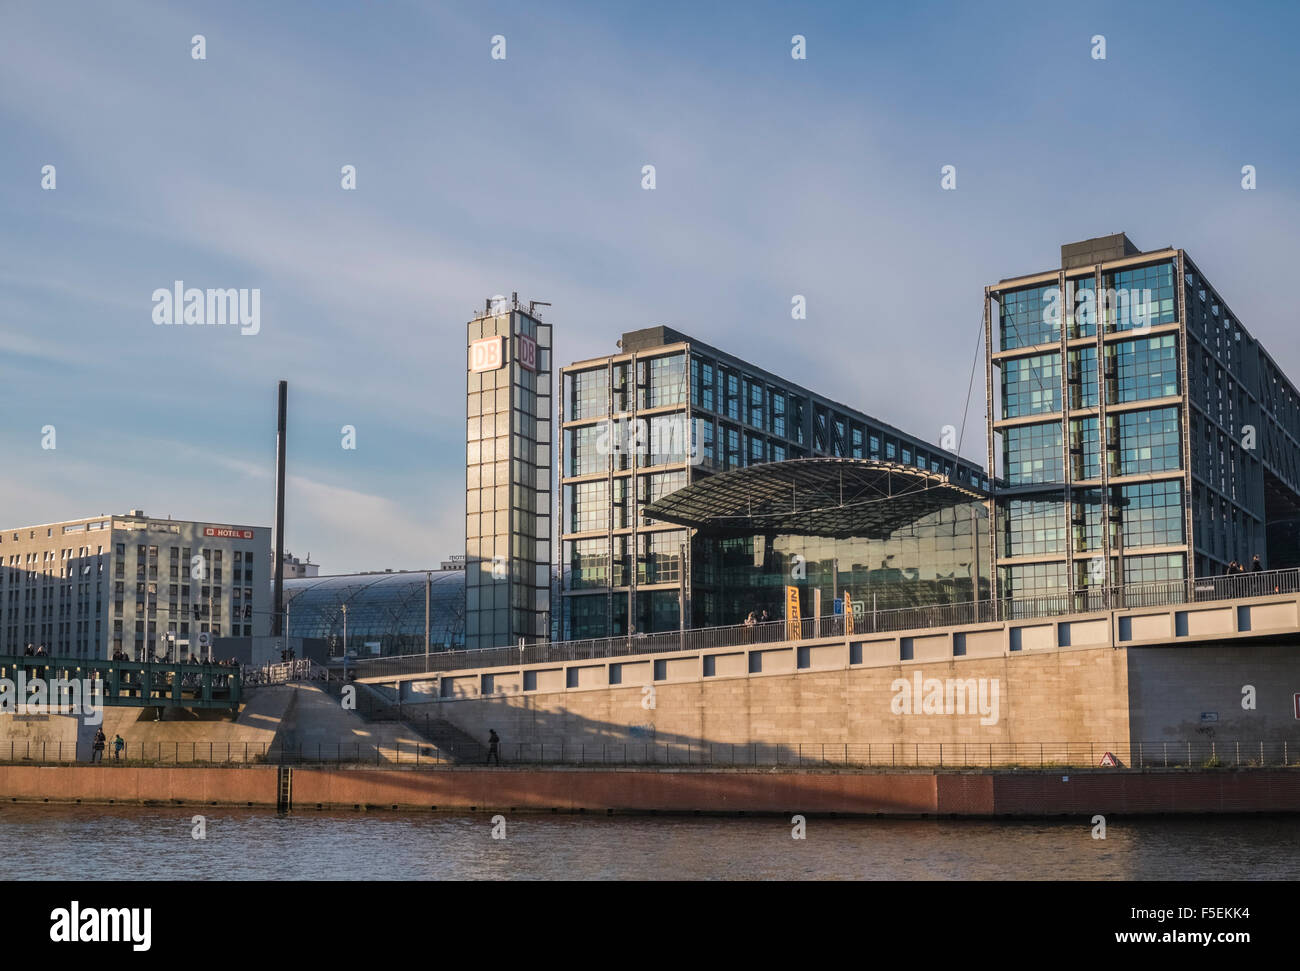 Modern Architecture Berlin modern architecture of the deutsche bahn building, overlooking the